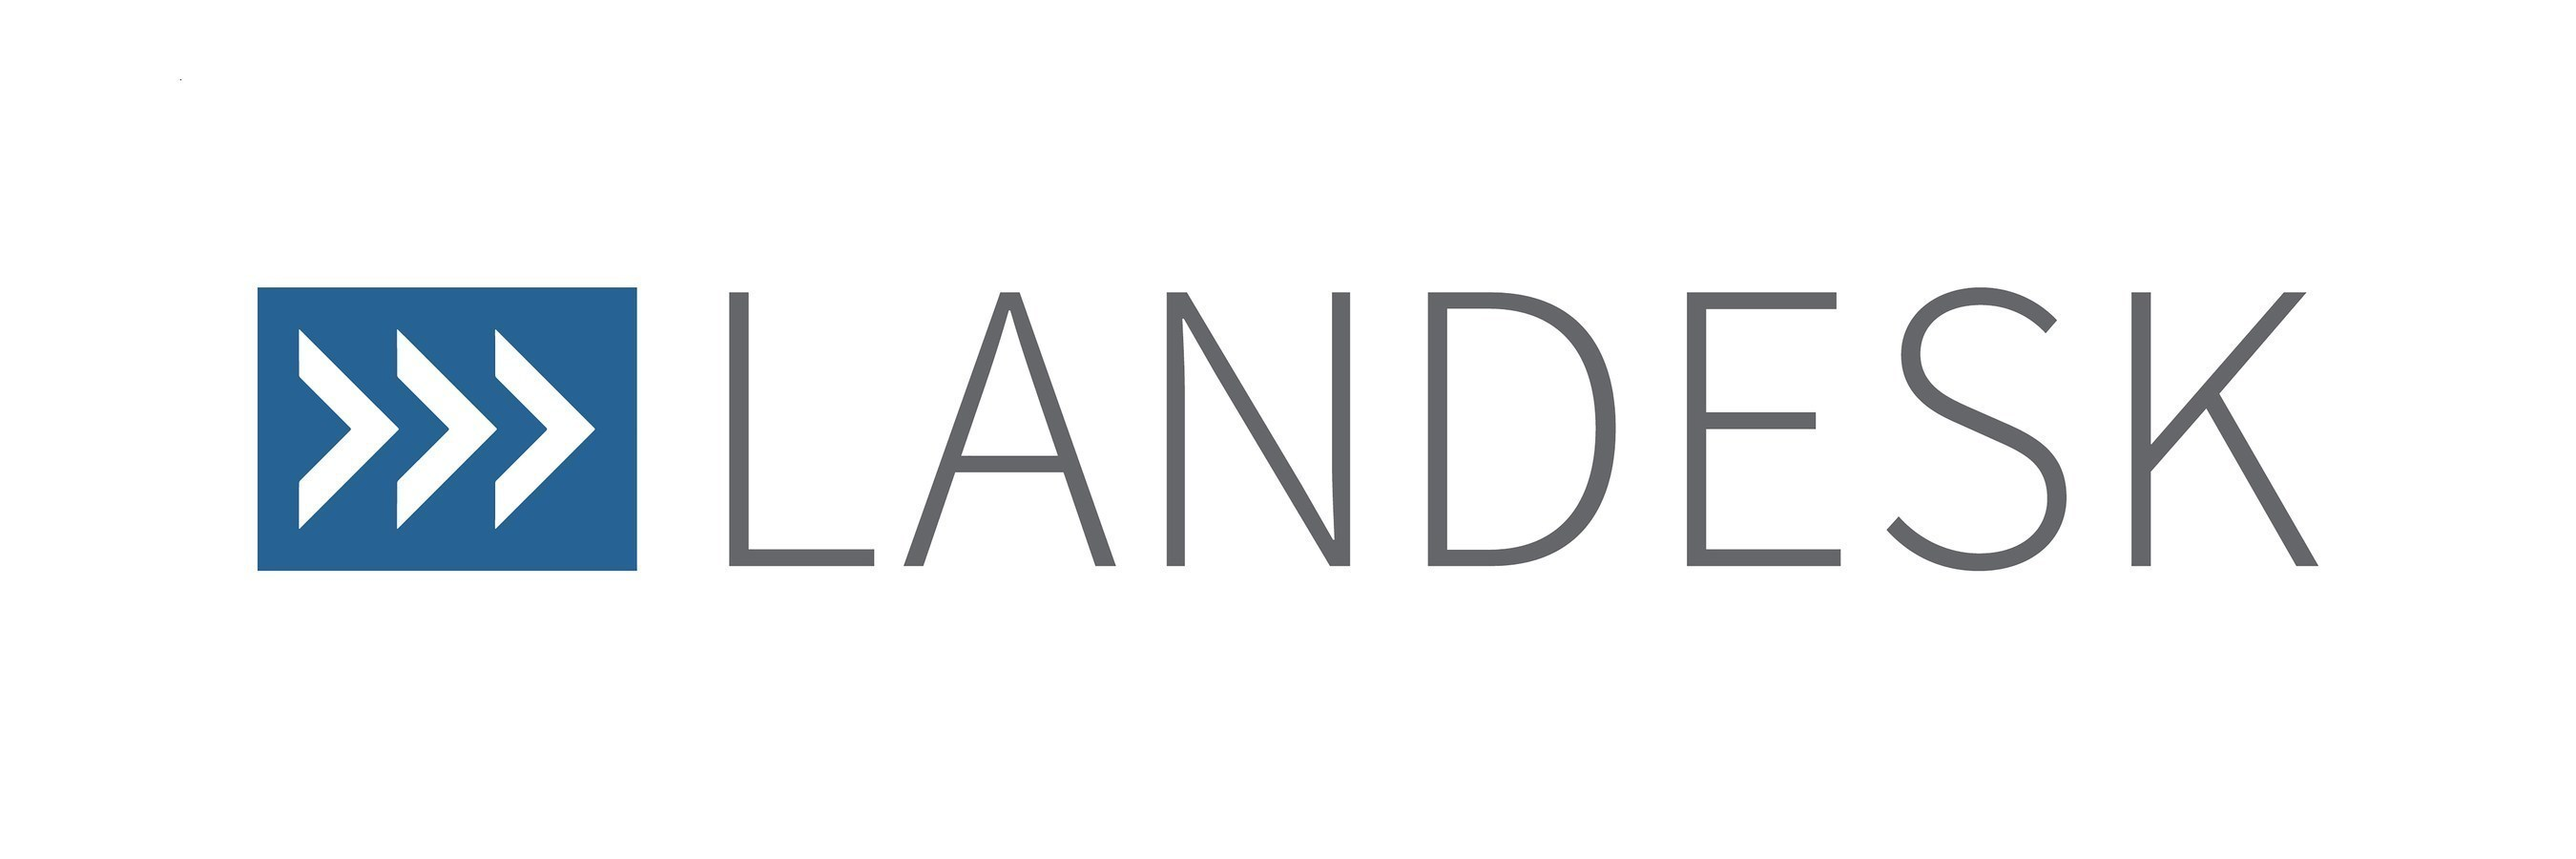 LANDESK Enters into an OEM Agreement with Software License Optimization Expert Concorde Solutions